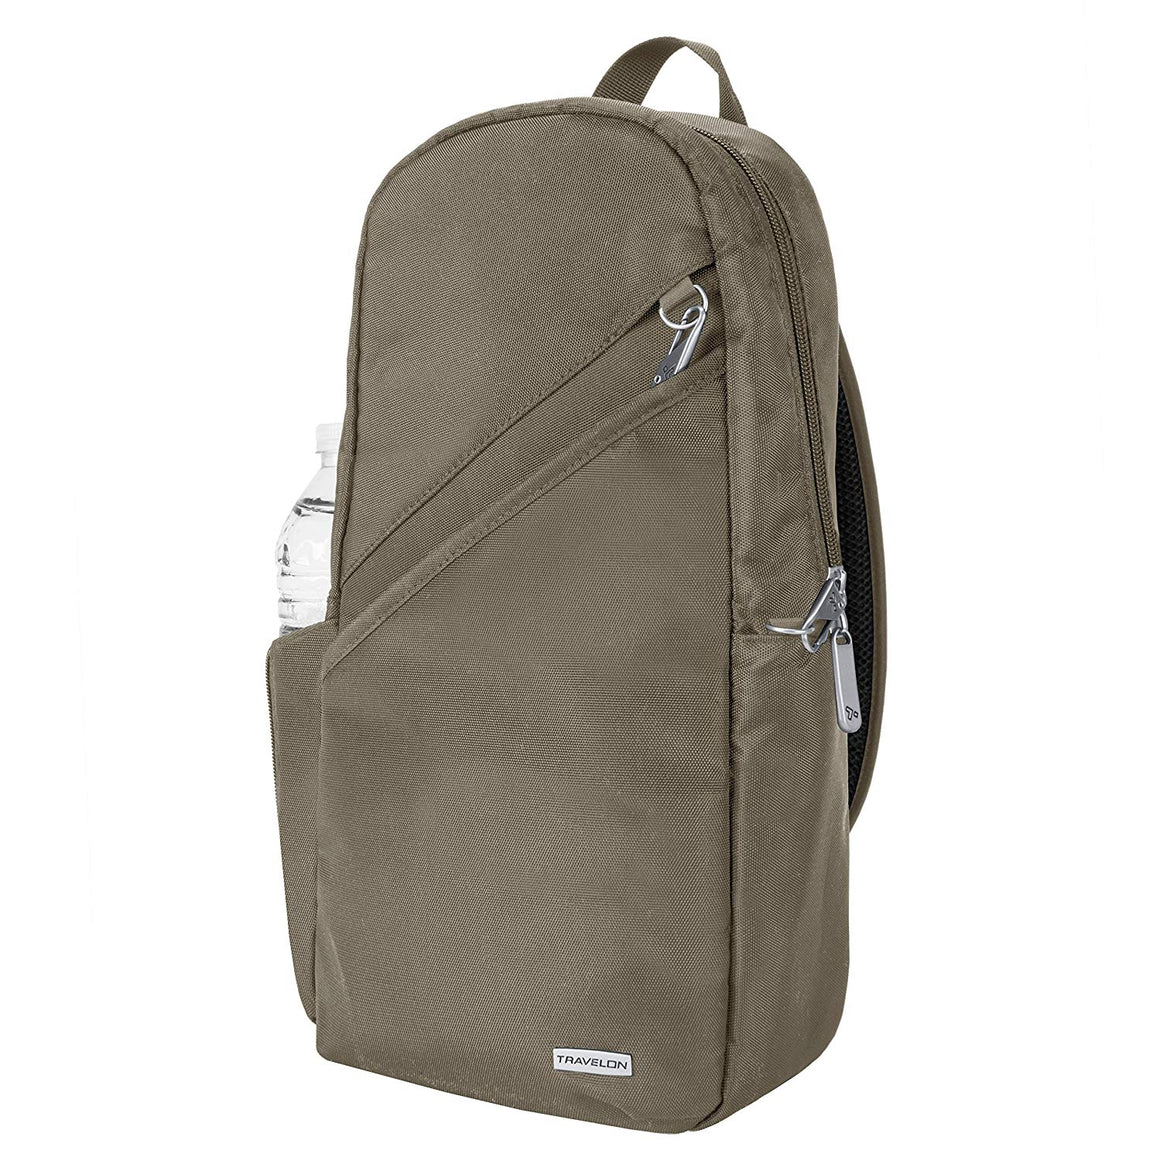 Travelon Anti-Theft Classic Sling Bag Nutmeg